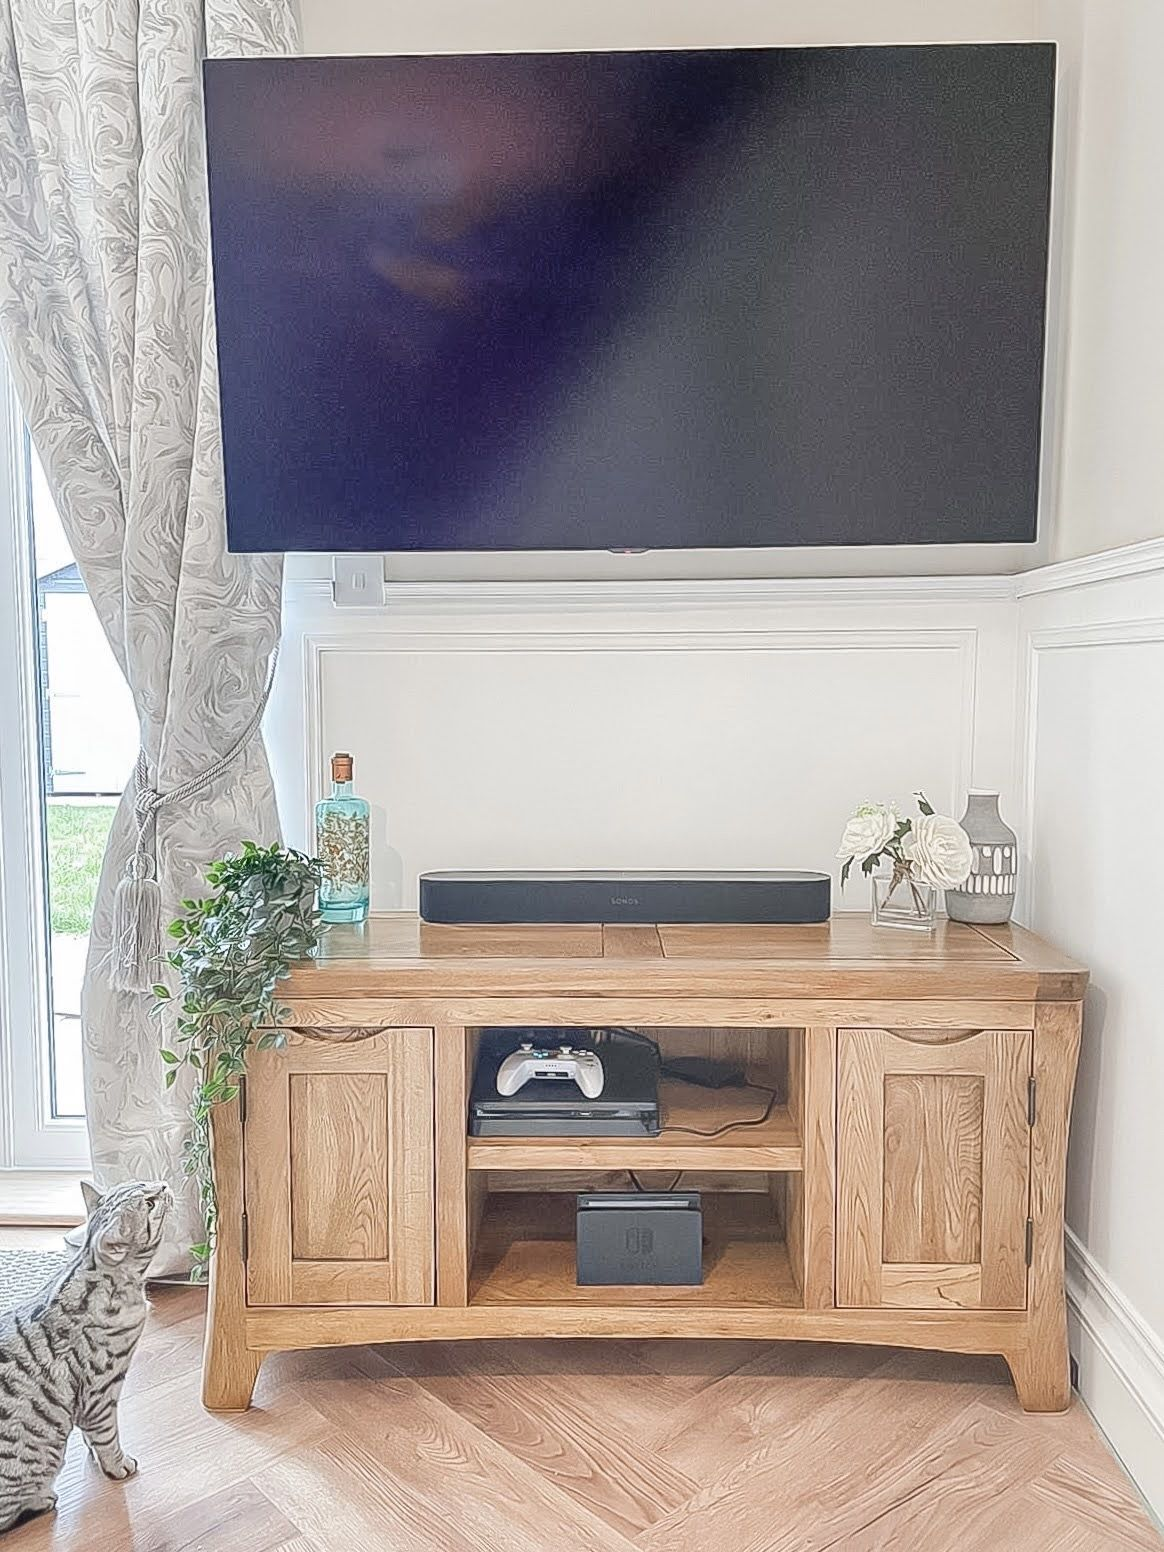 10 easy steps to hide TV wires in the wall – in less than an hour